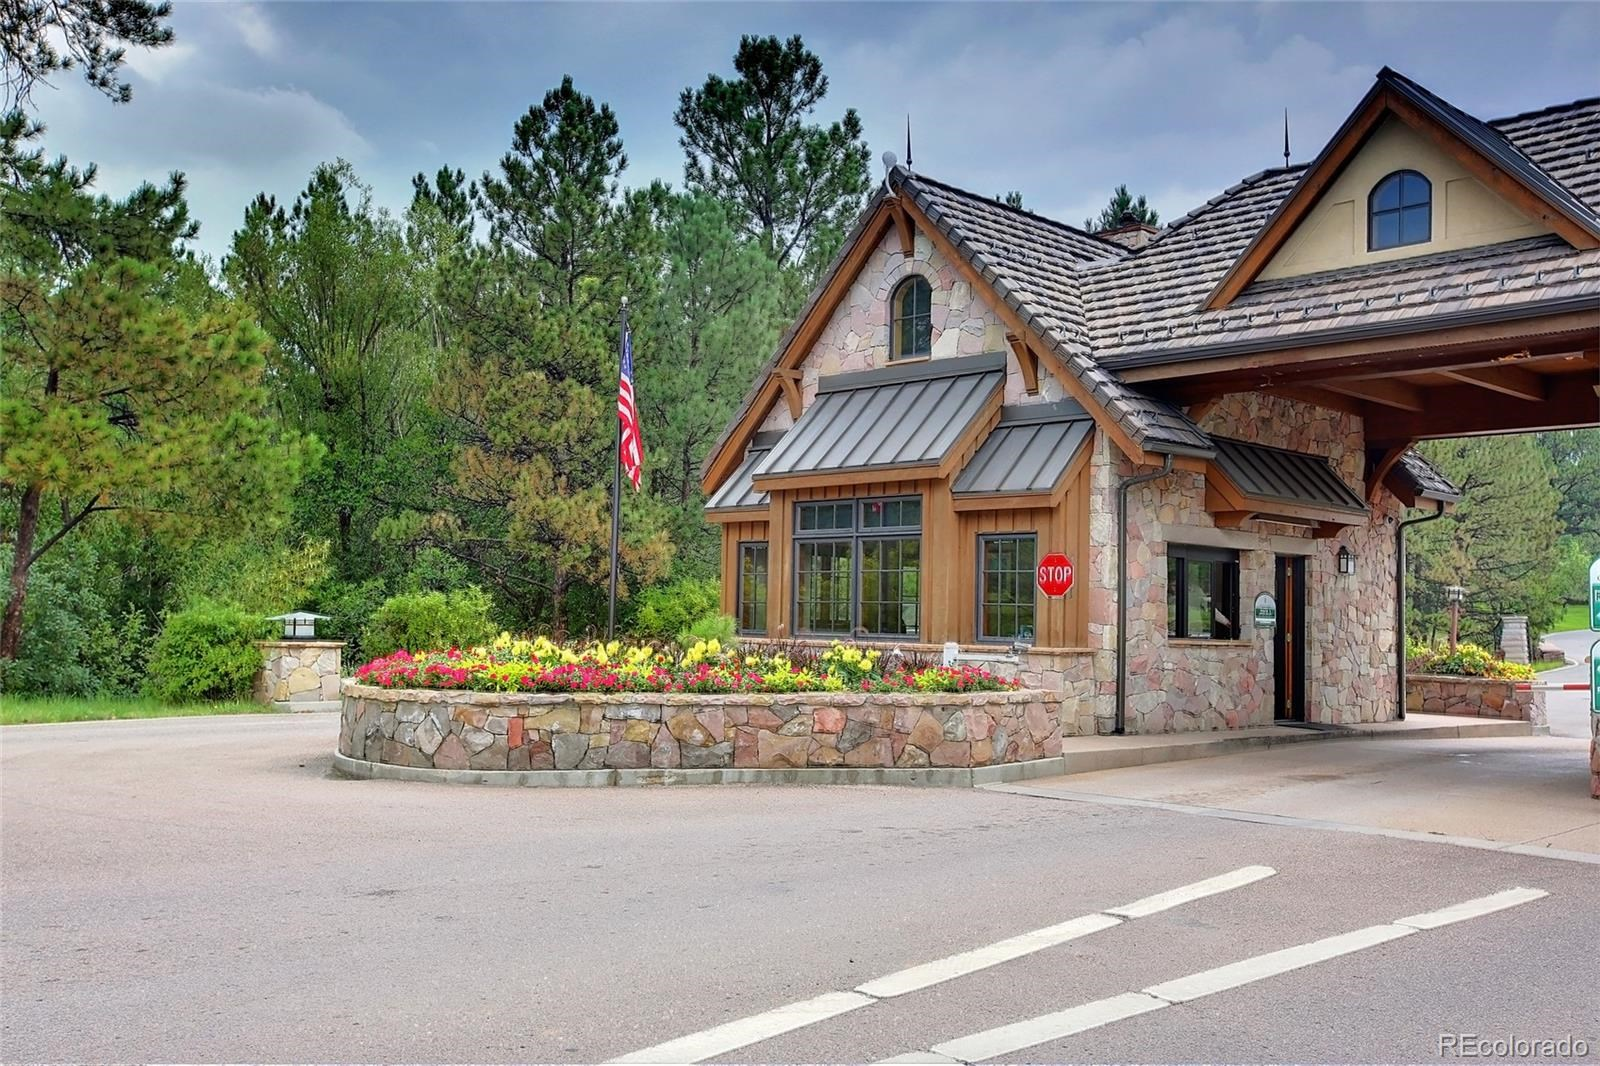 MLS# 7138743 - 3 - 965 Country Club Parkway, Castle Rock, CO 80108